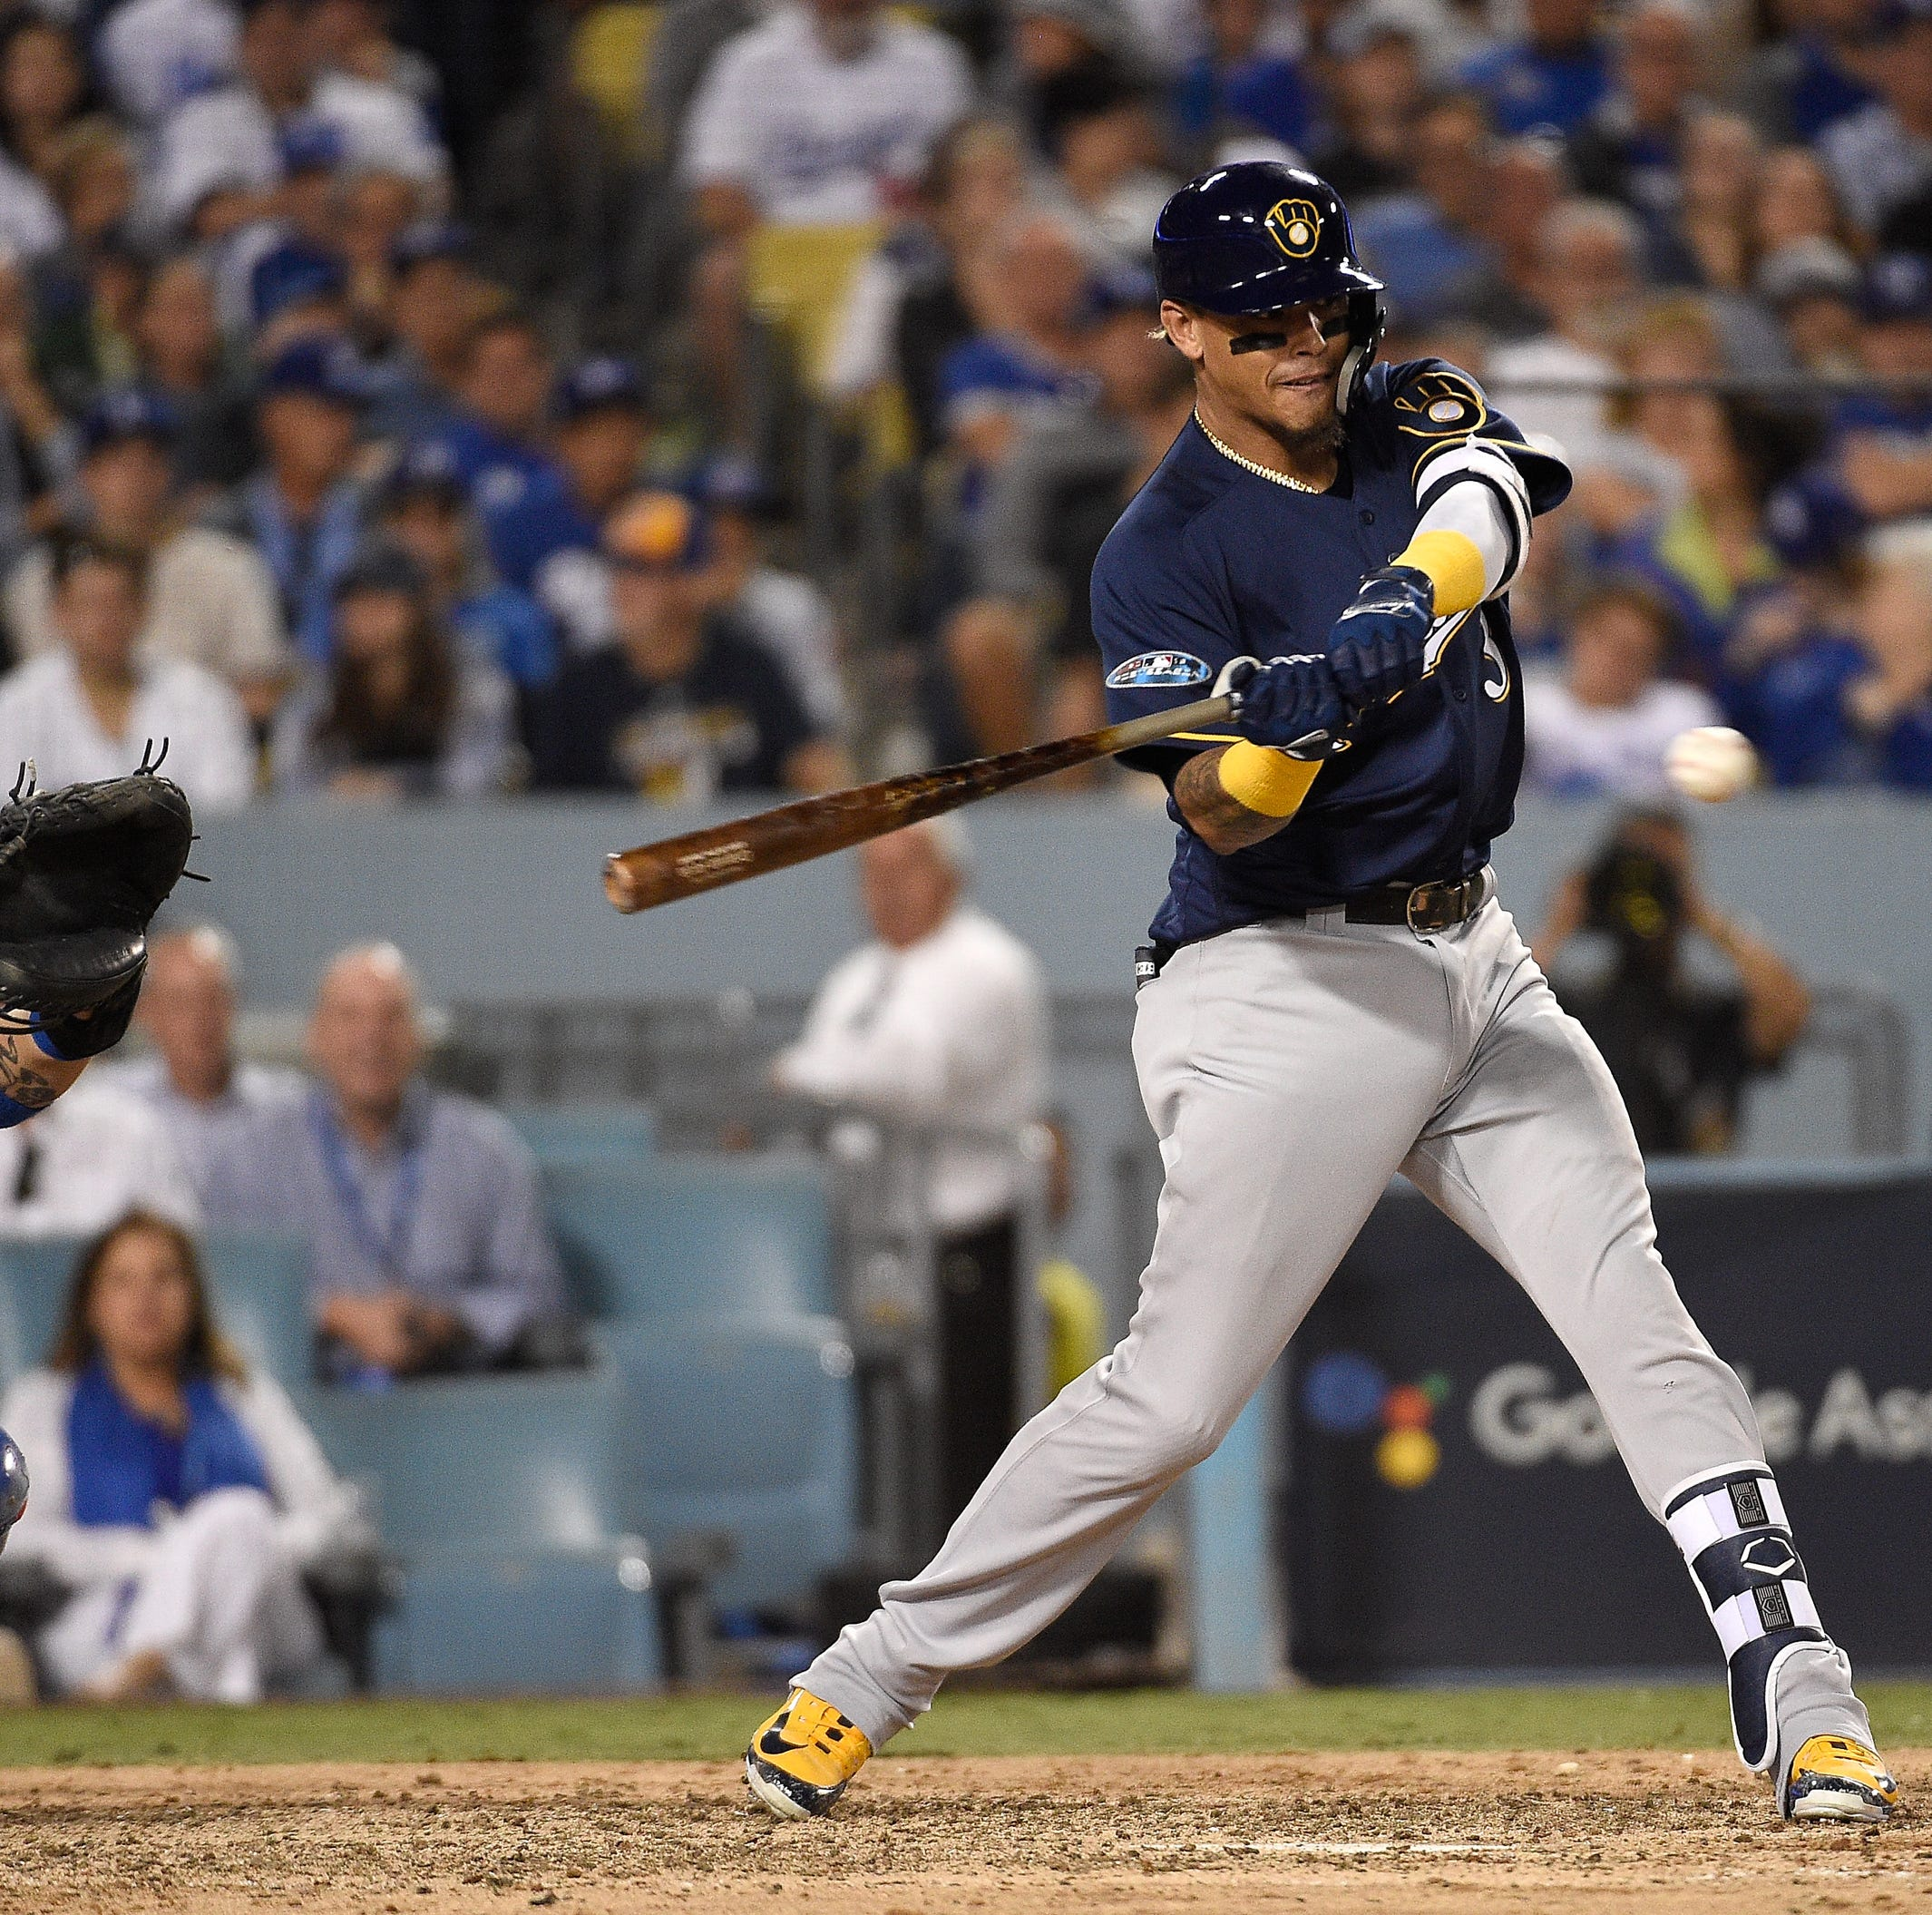 After a season of more downs than ups, Orlando Arcia has become Mr. October for Brewers